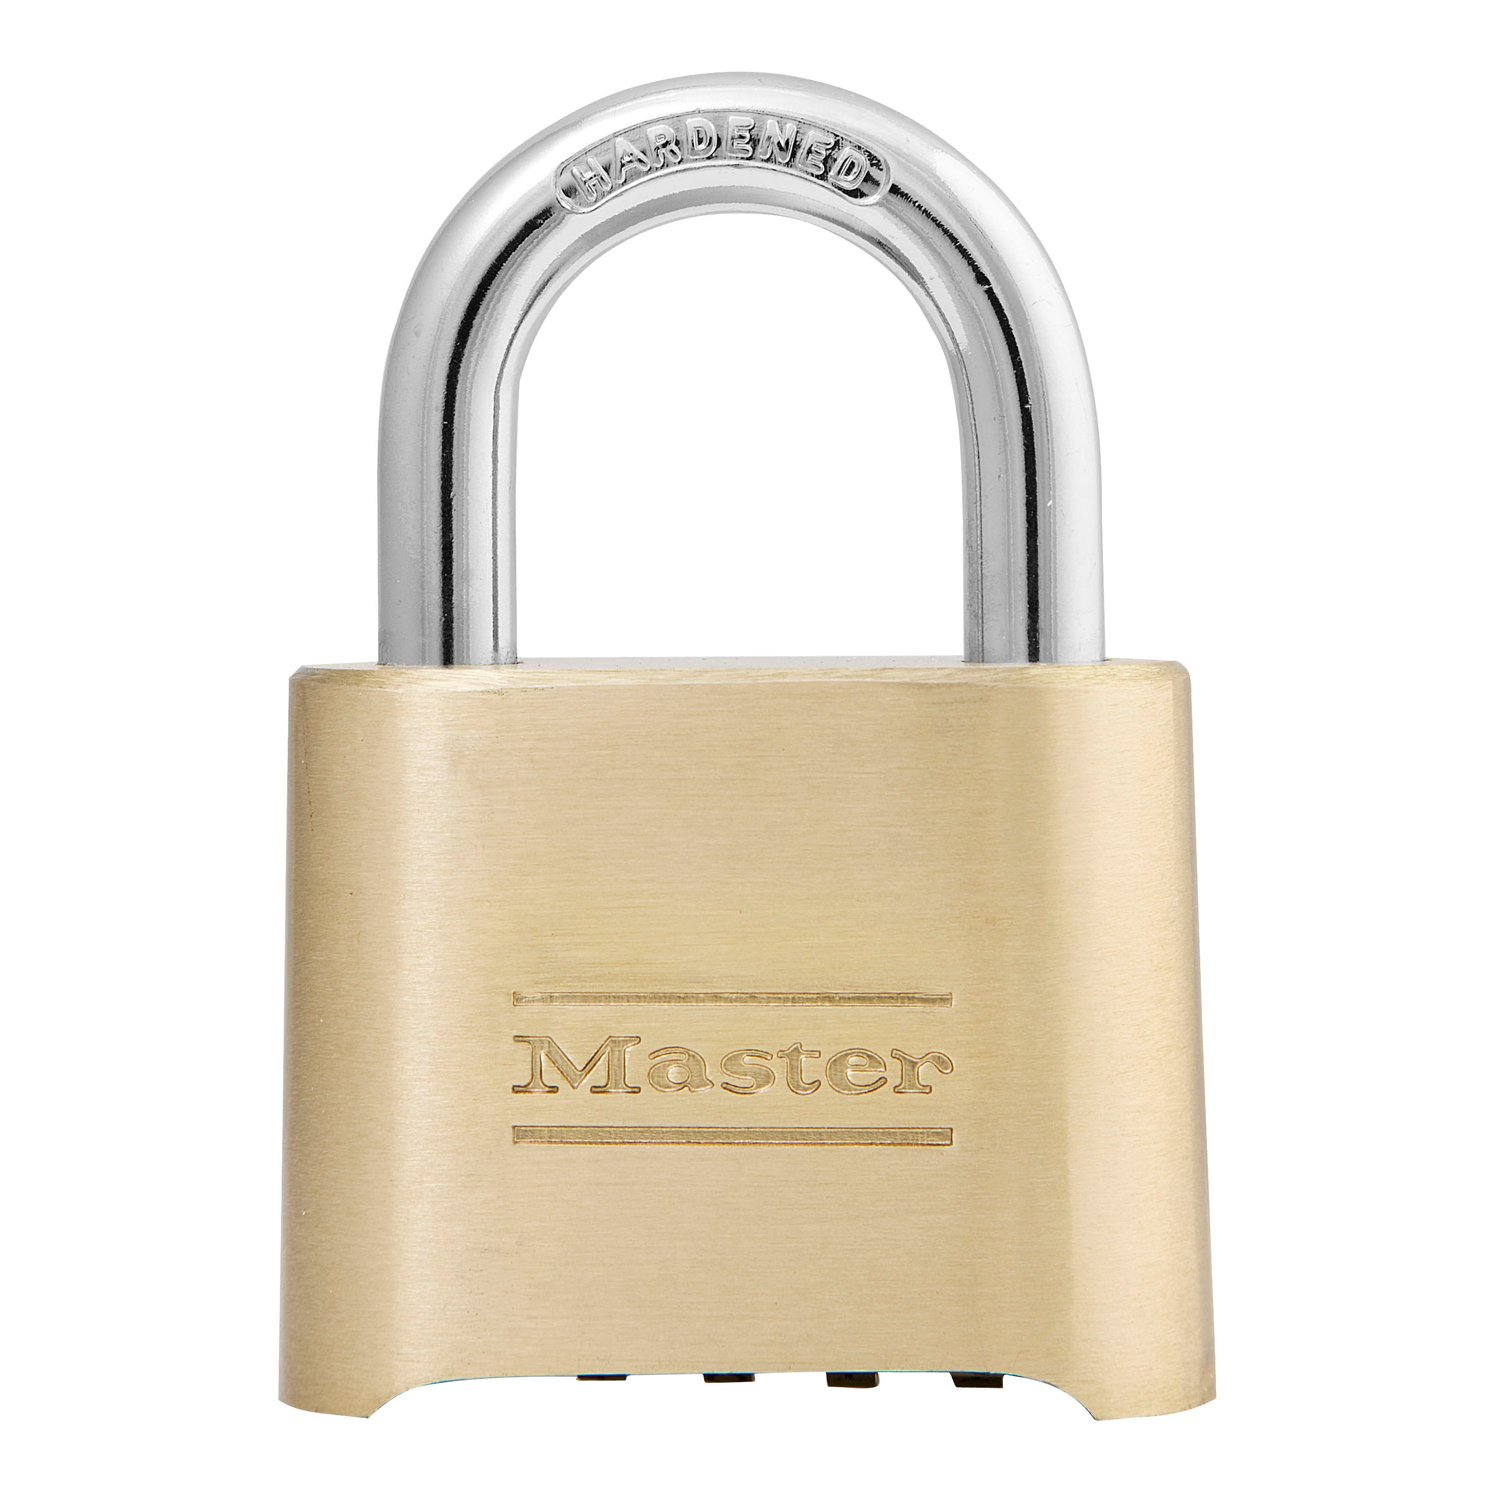 Master Lock 175D Set Your Own Combination Padlock, 1 Pack, Brass Finish